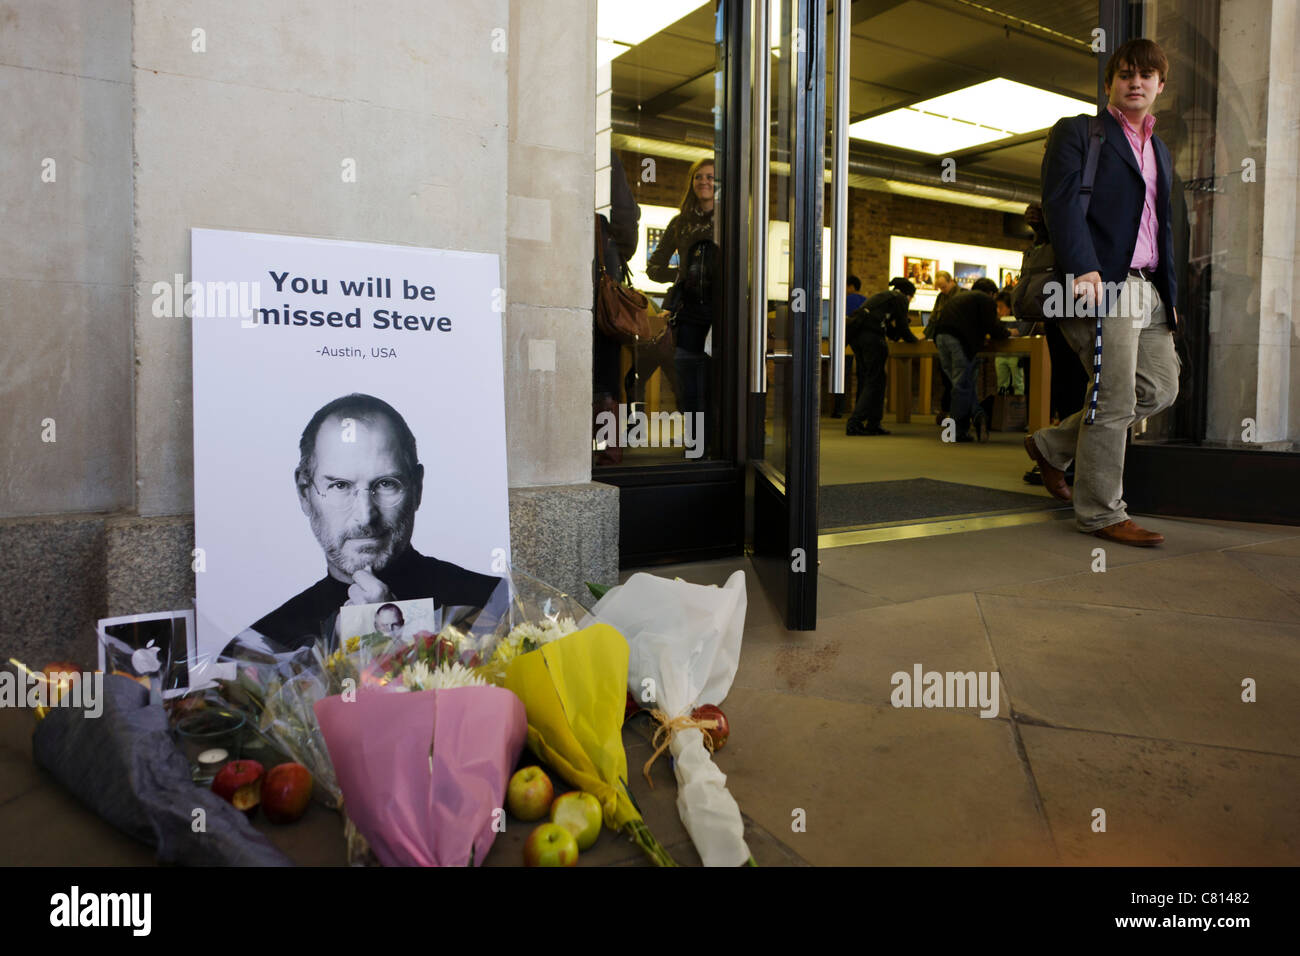 makeshift shrine to apples steve jobs the morning after his death was announced at the age of 56 from cancer